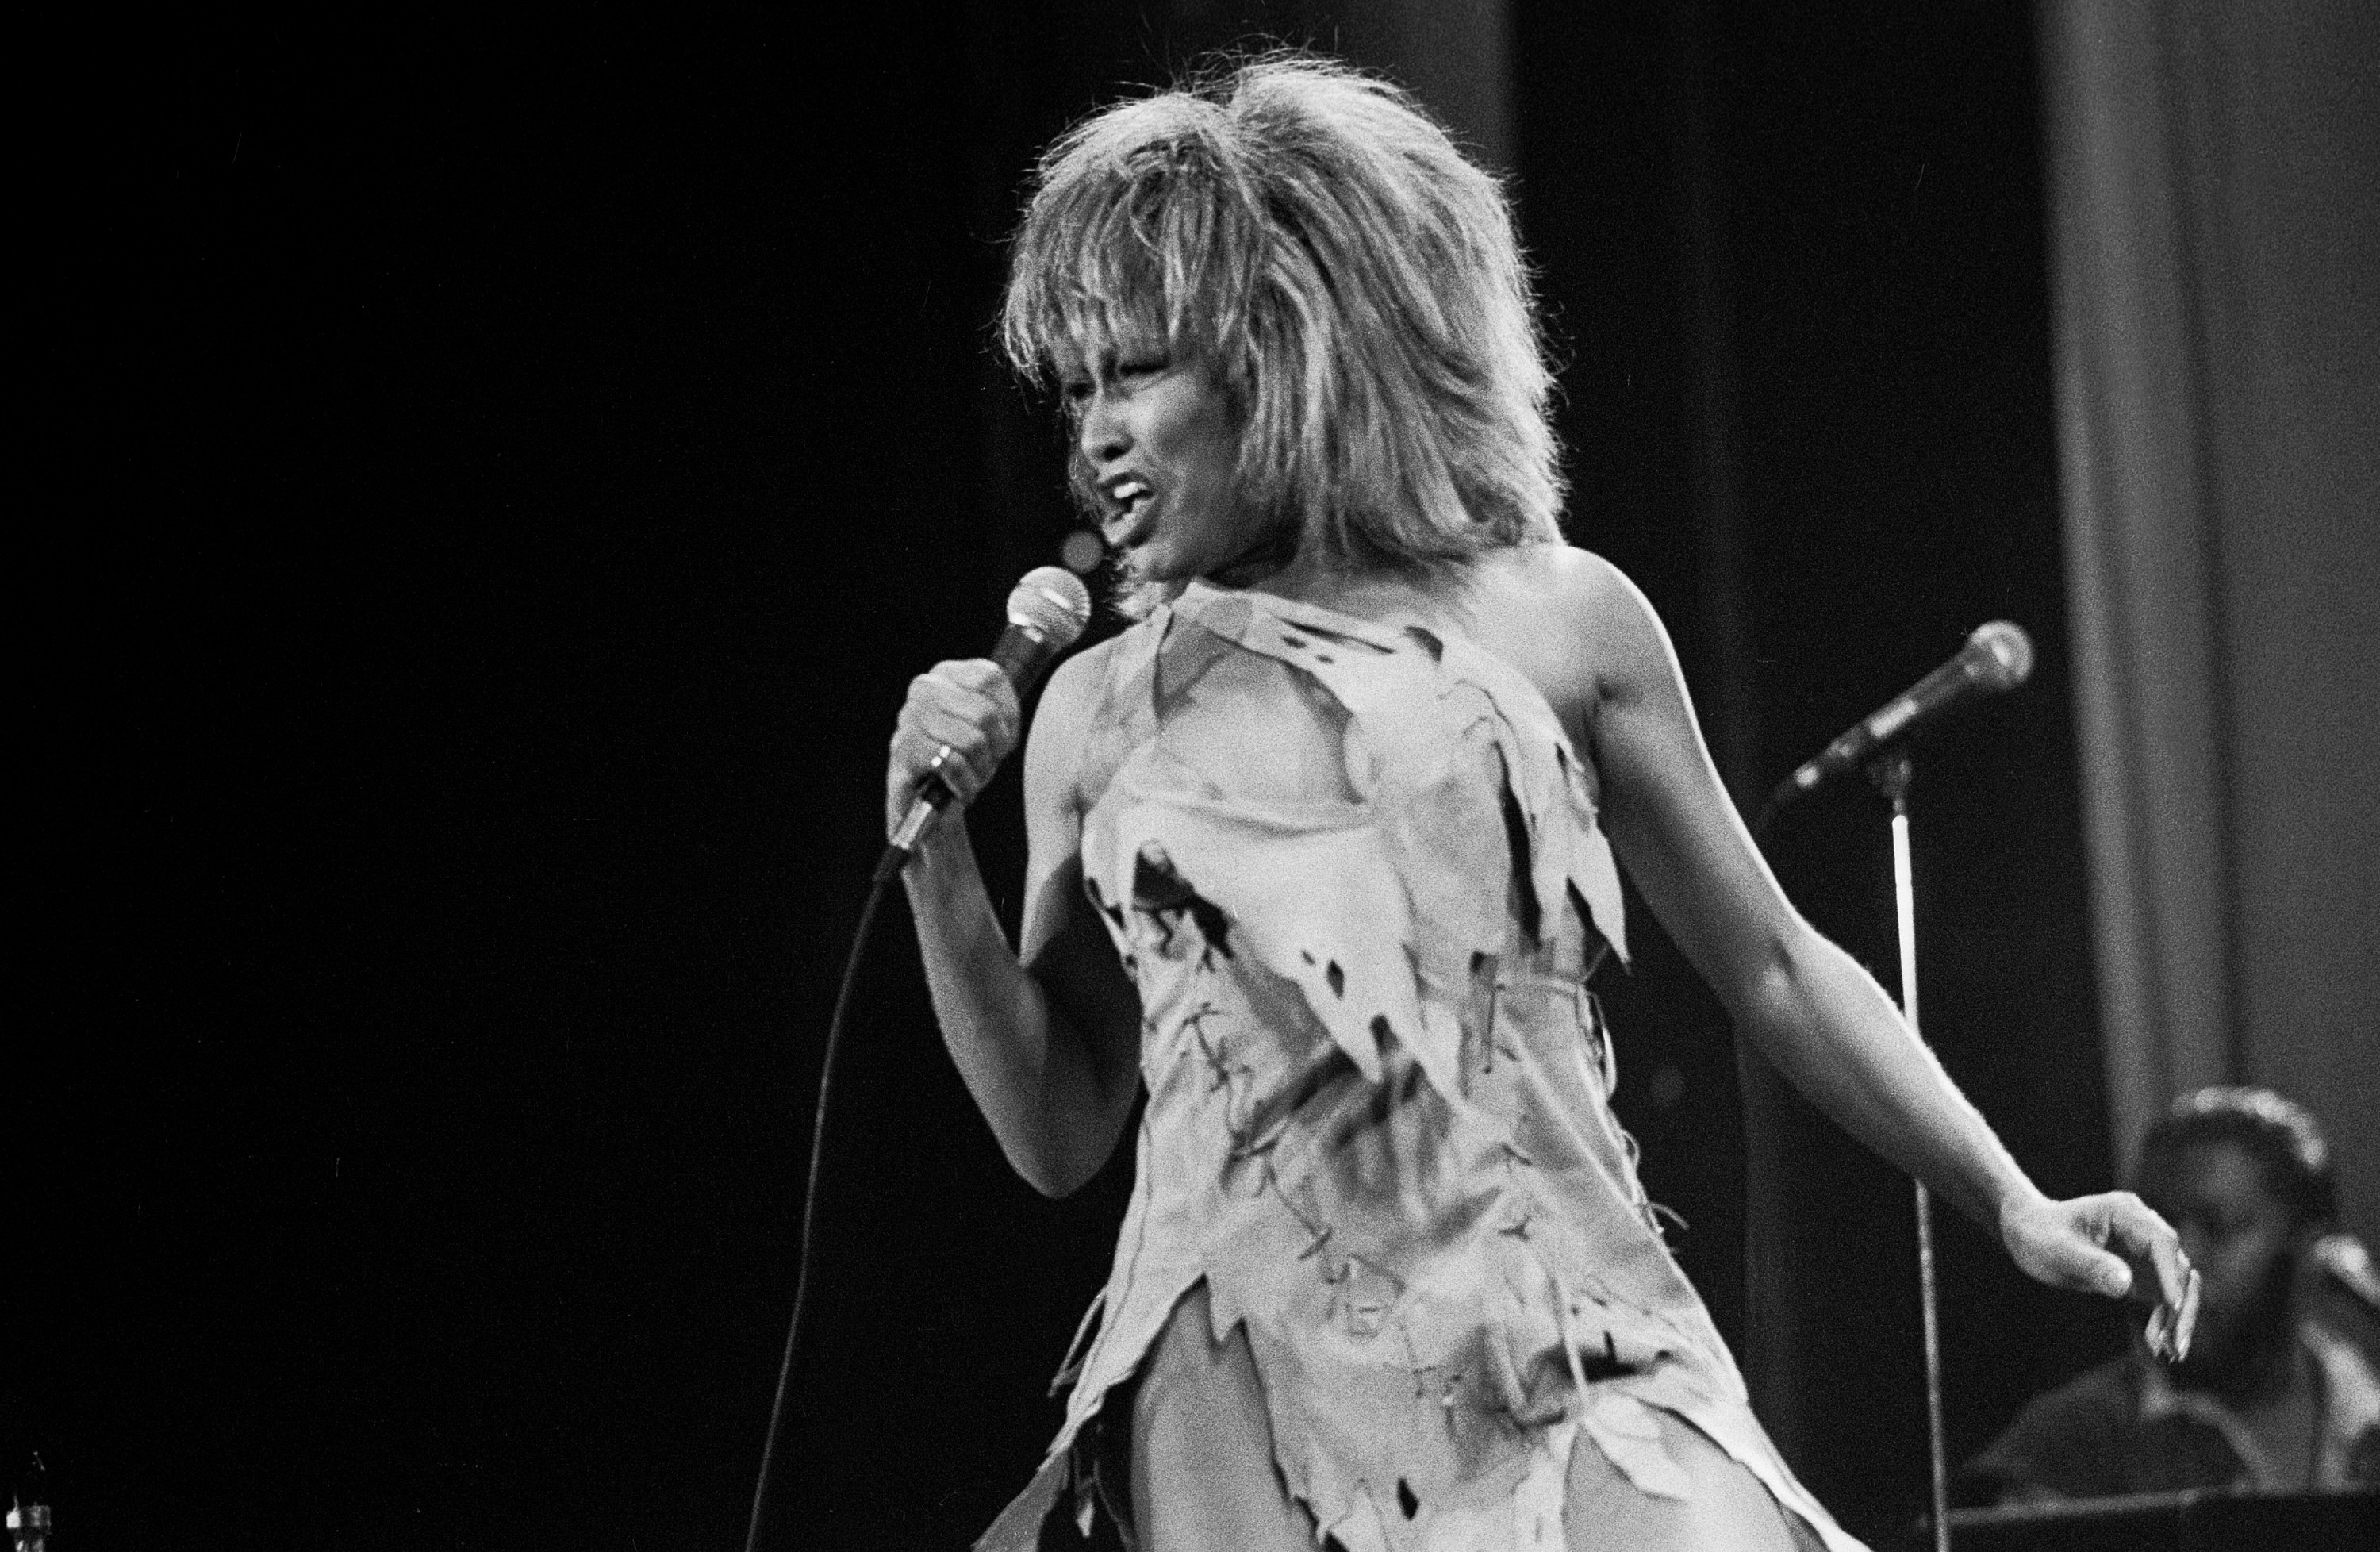 Tina Turner performing with ripped dress and signature big hair in 1983